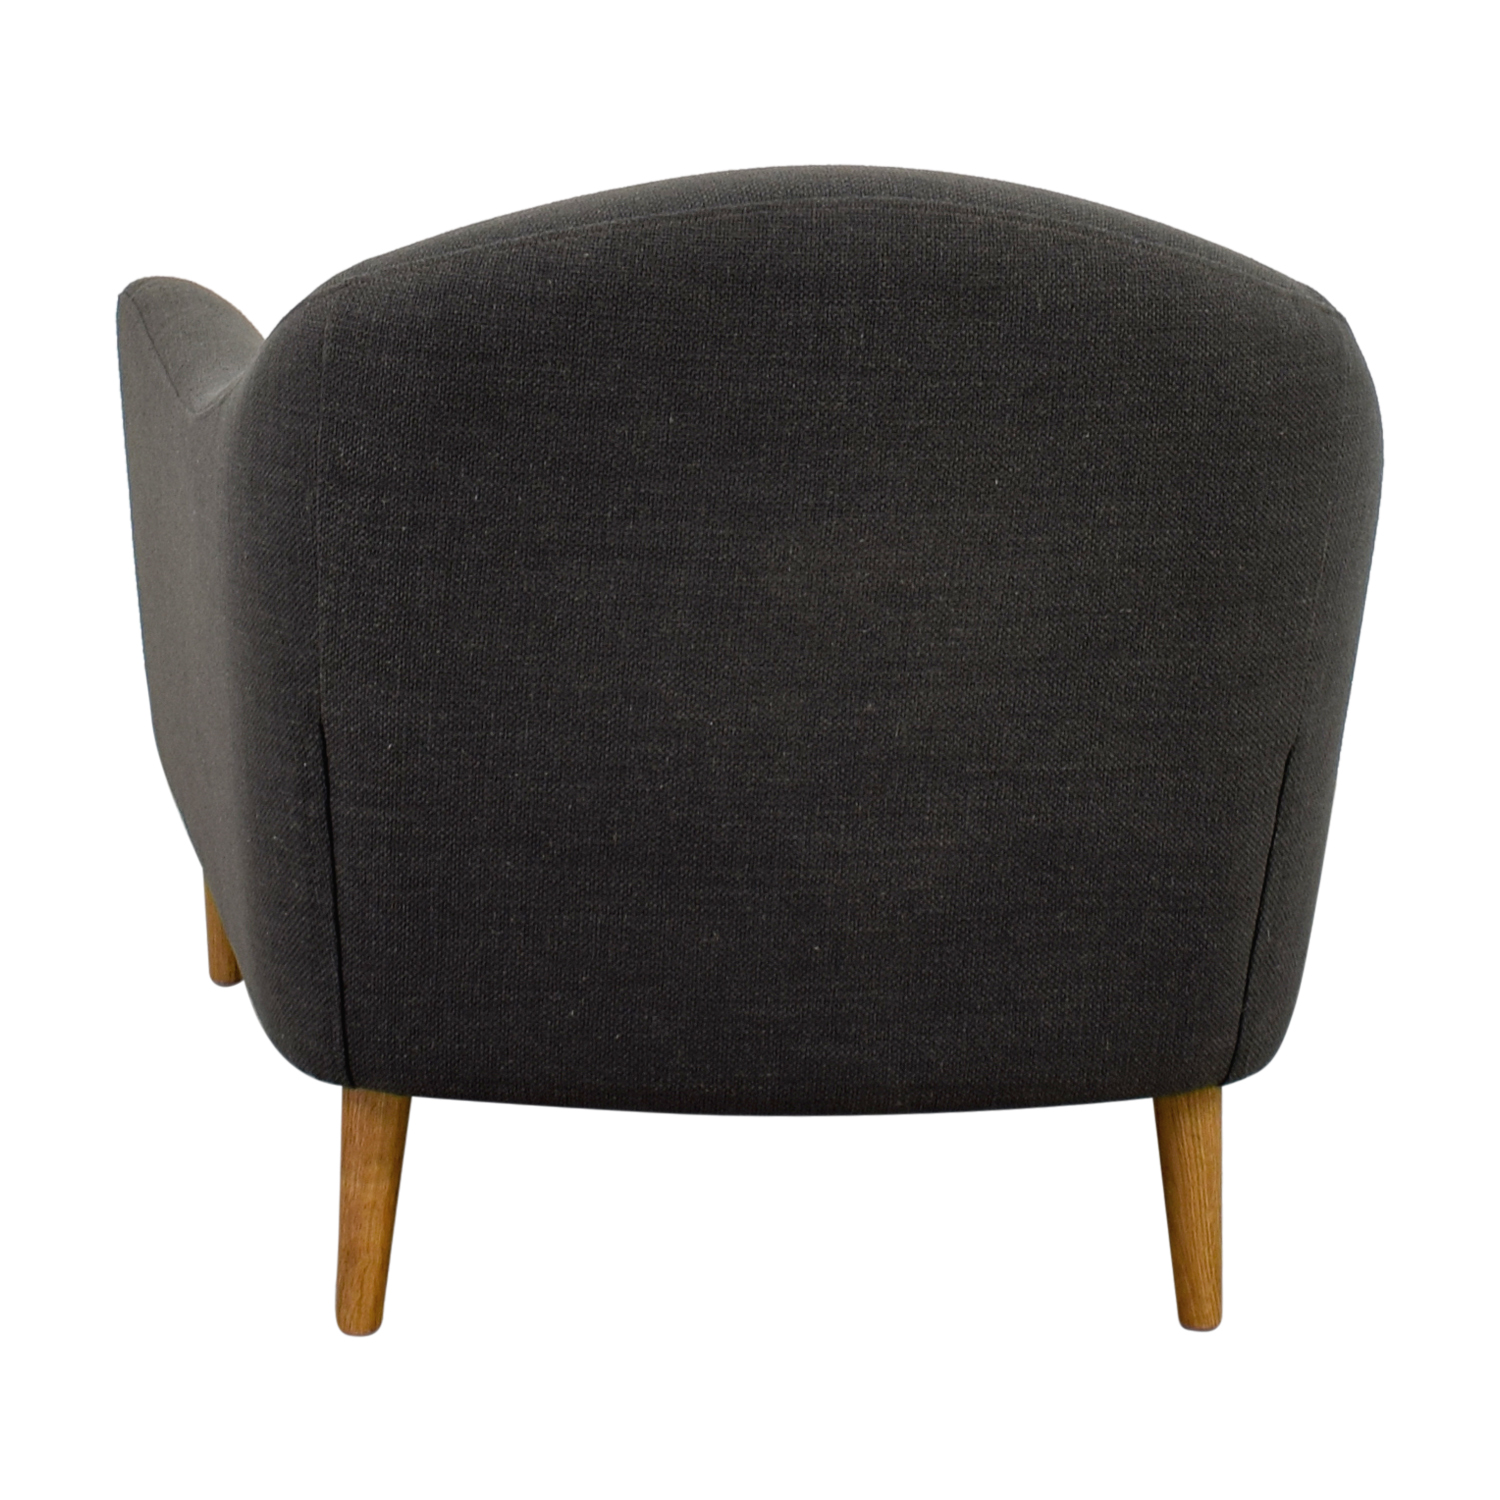 Crate & Barrel Grey Accent Chair / Chairs